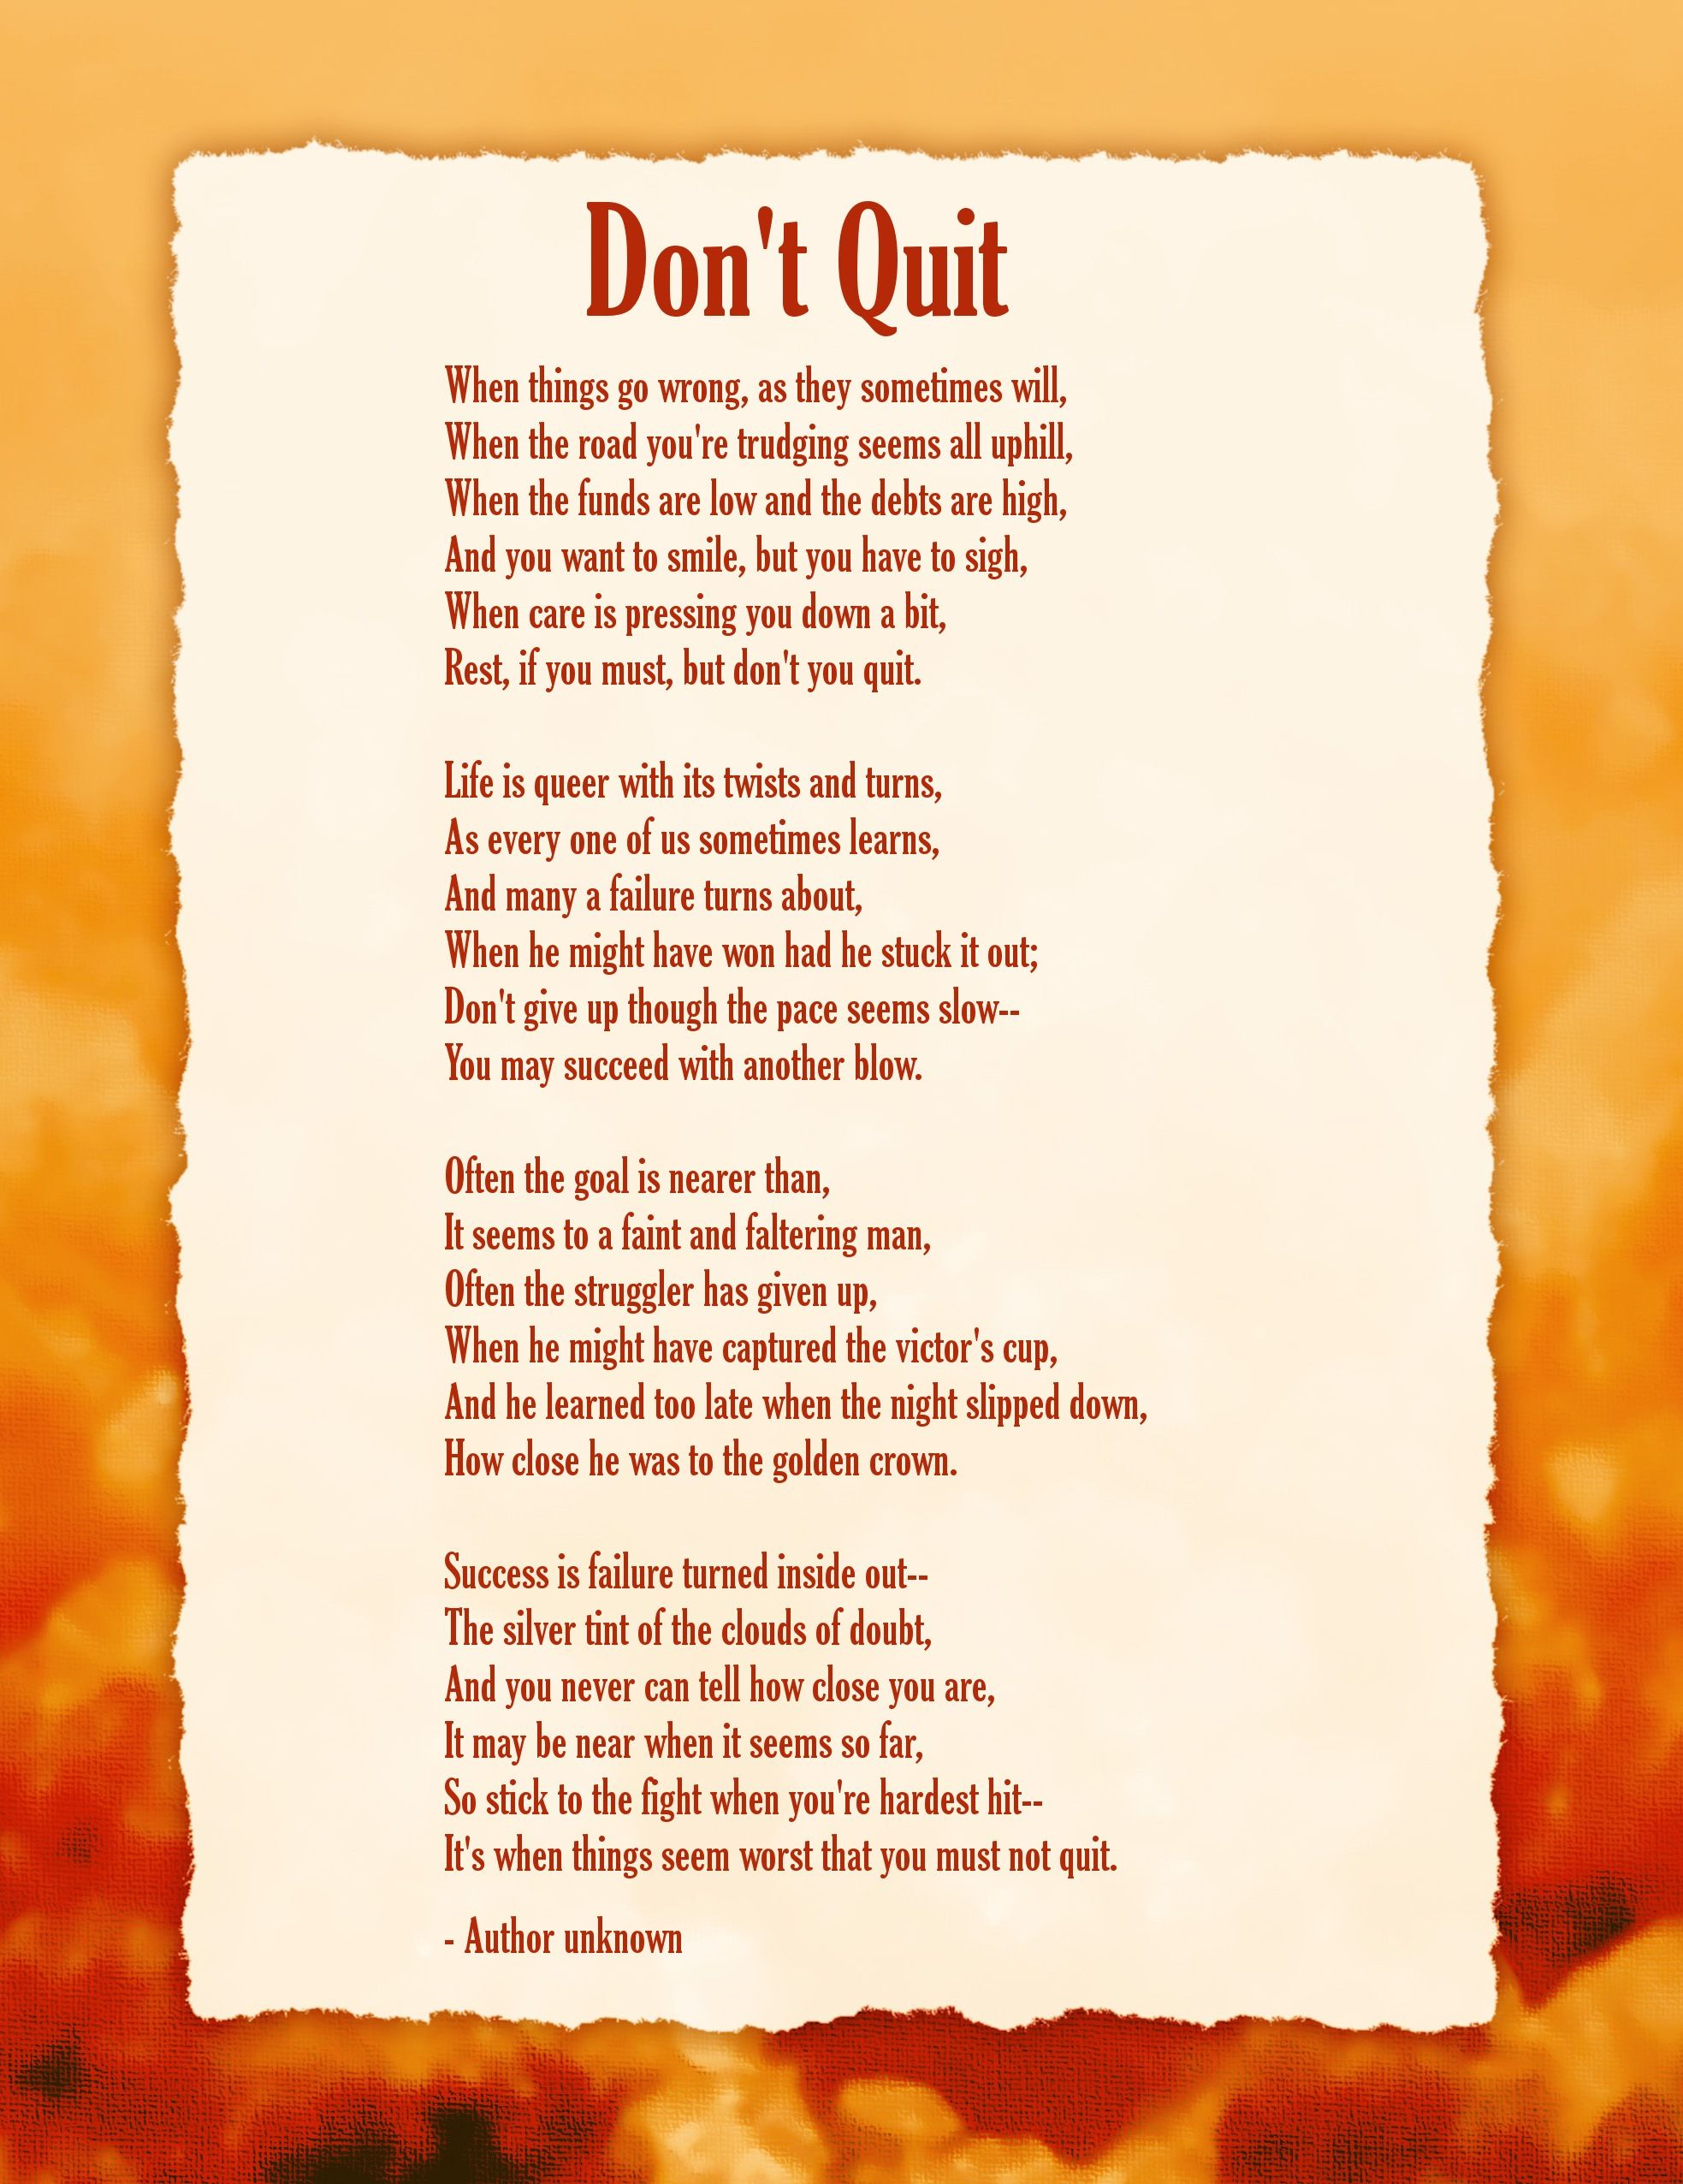 dont quit inspirational poem large picture pdf verybestquotes